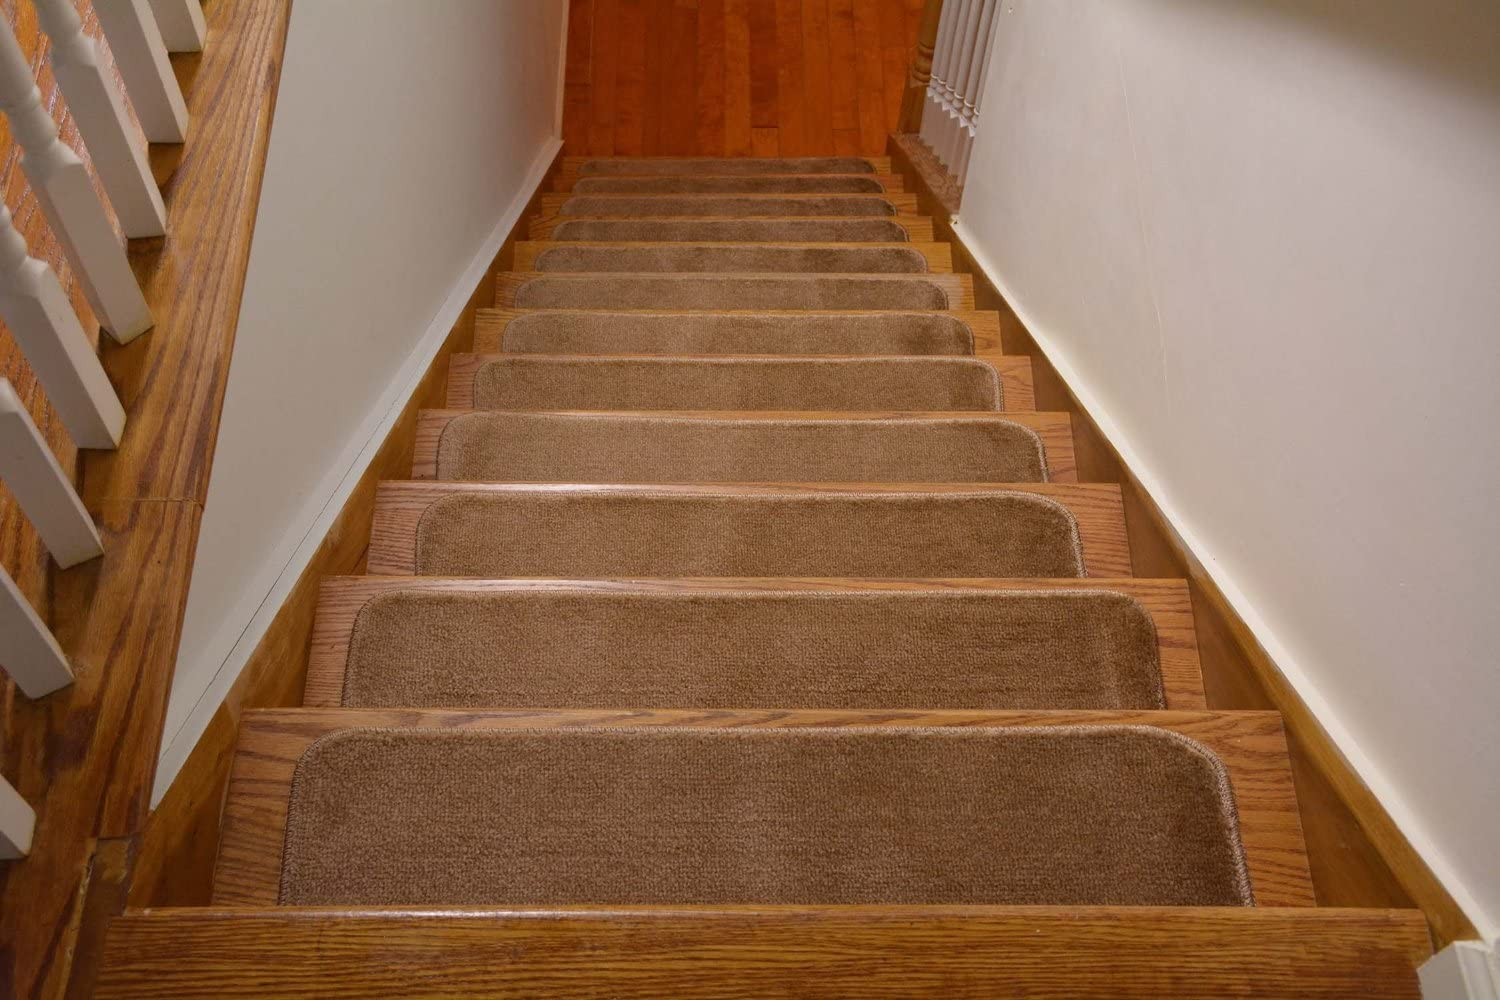 Set of 13, Black Stair Tread Treads Indoor 7 inch x 24 inch Machine Washable Skid Slip Resistant Carpet Stair Tread Treads Comfy Collection